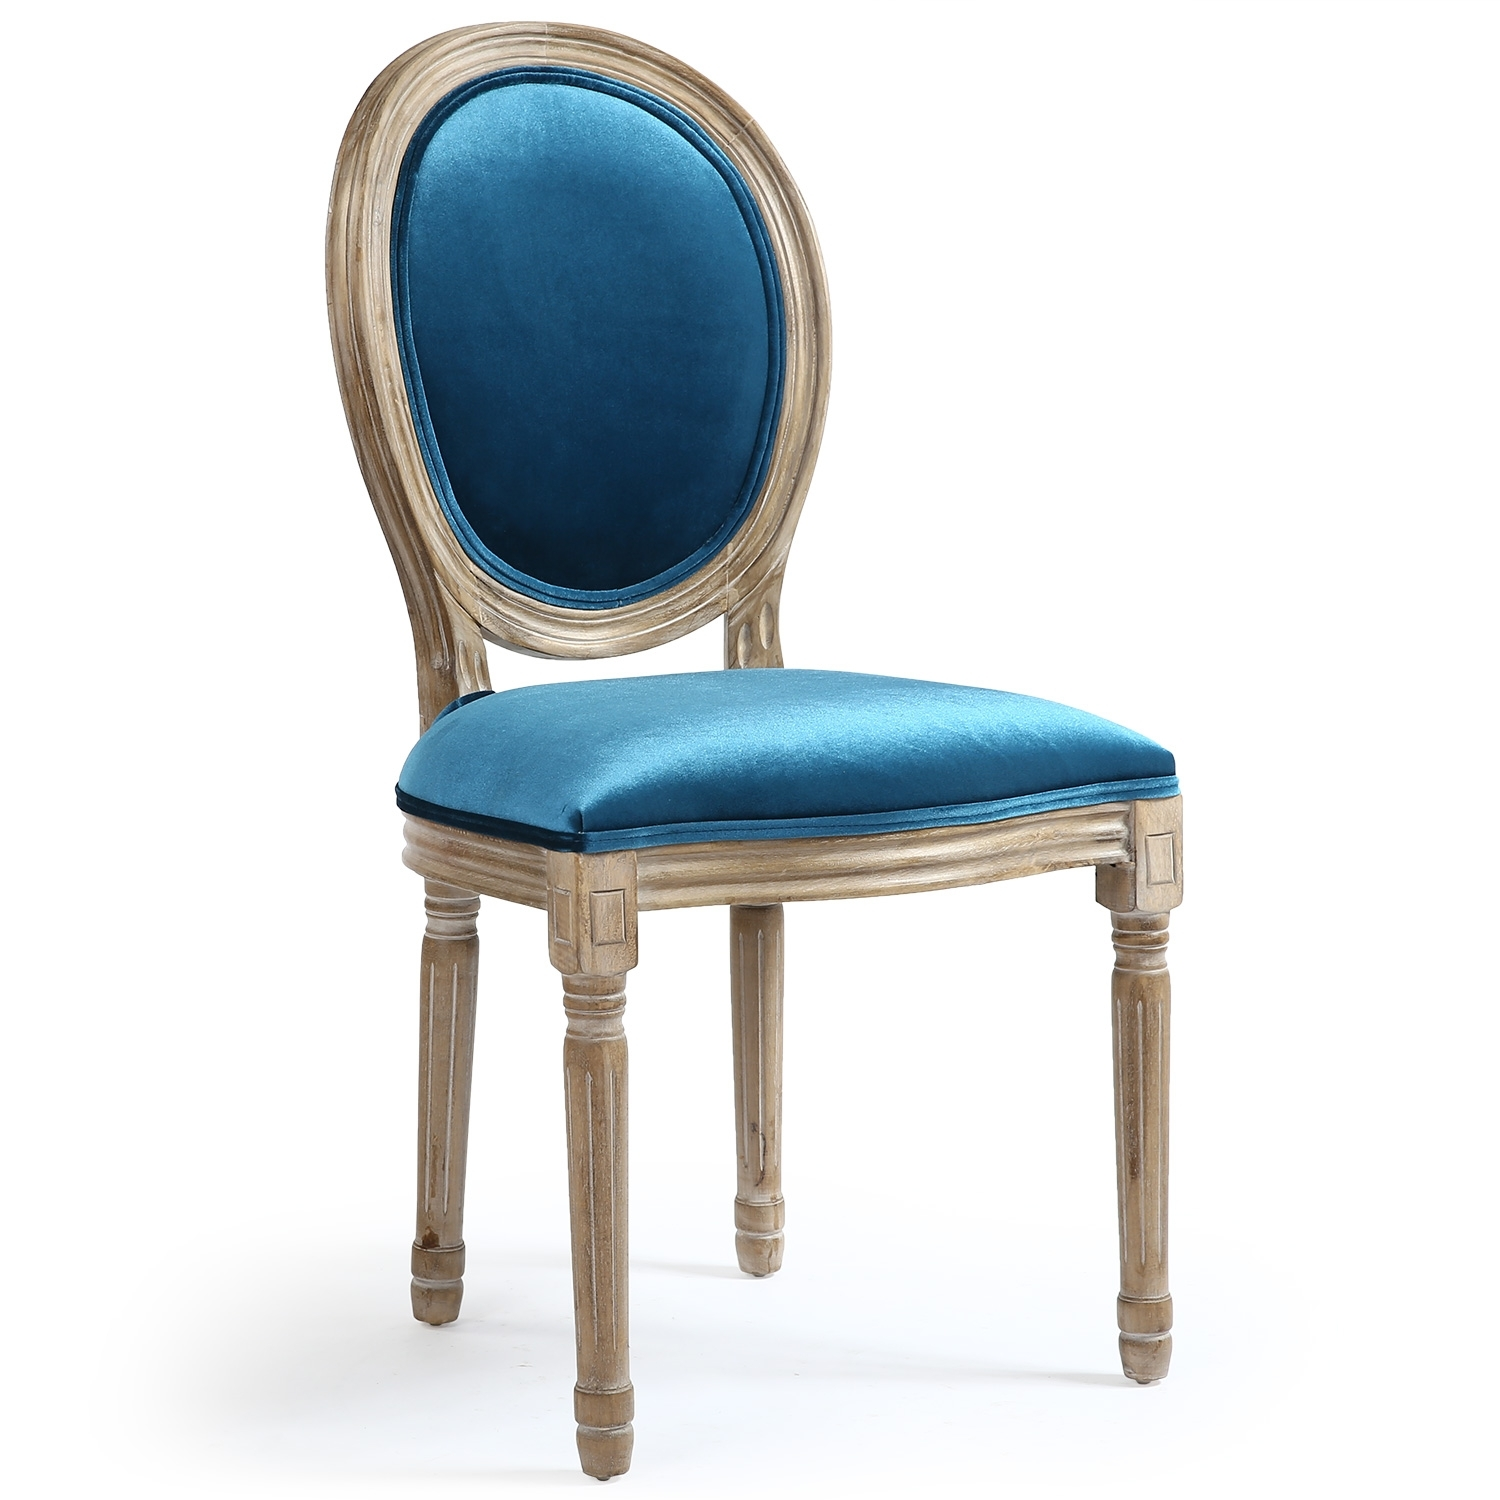 chaise m daillon bois et velours bleu louis xvi lot de 2. Black Bedroom Furniture Sets. Home Design Ideas